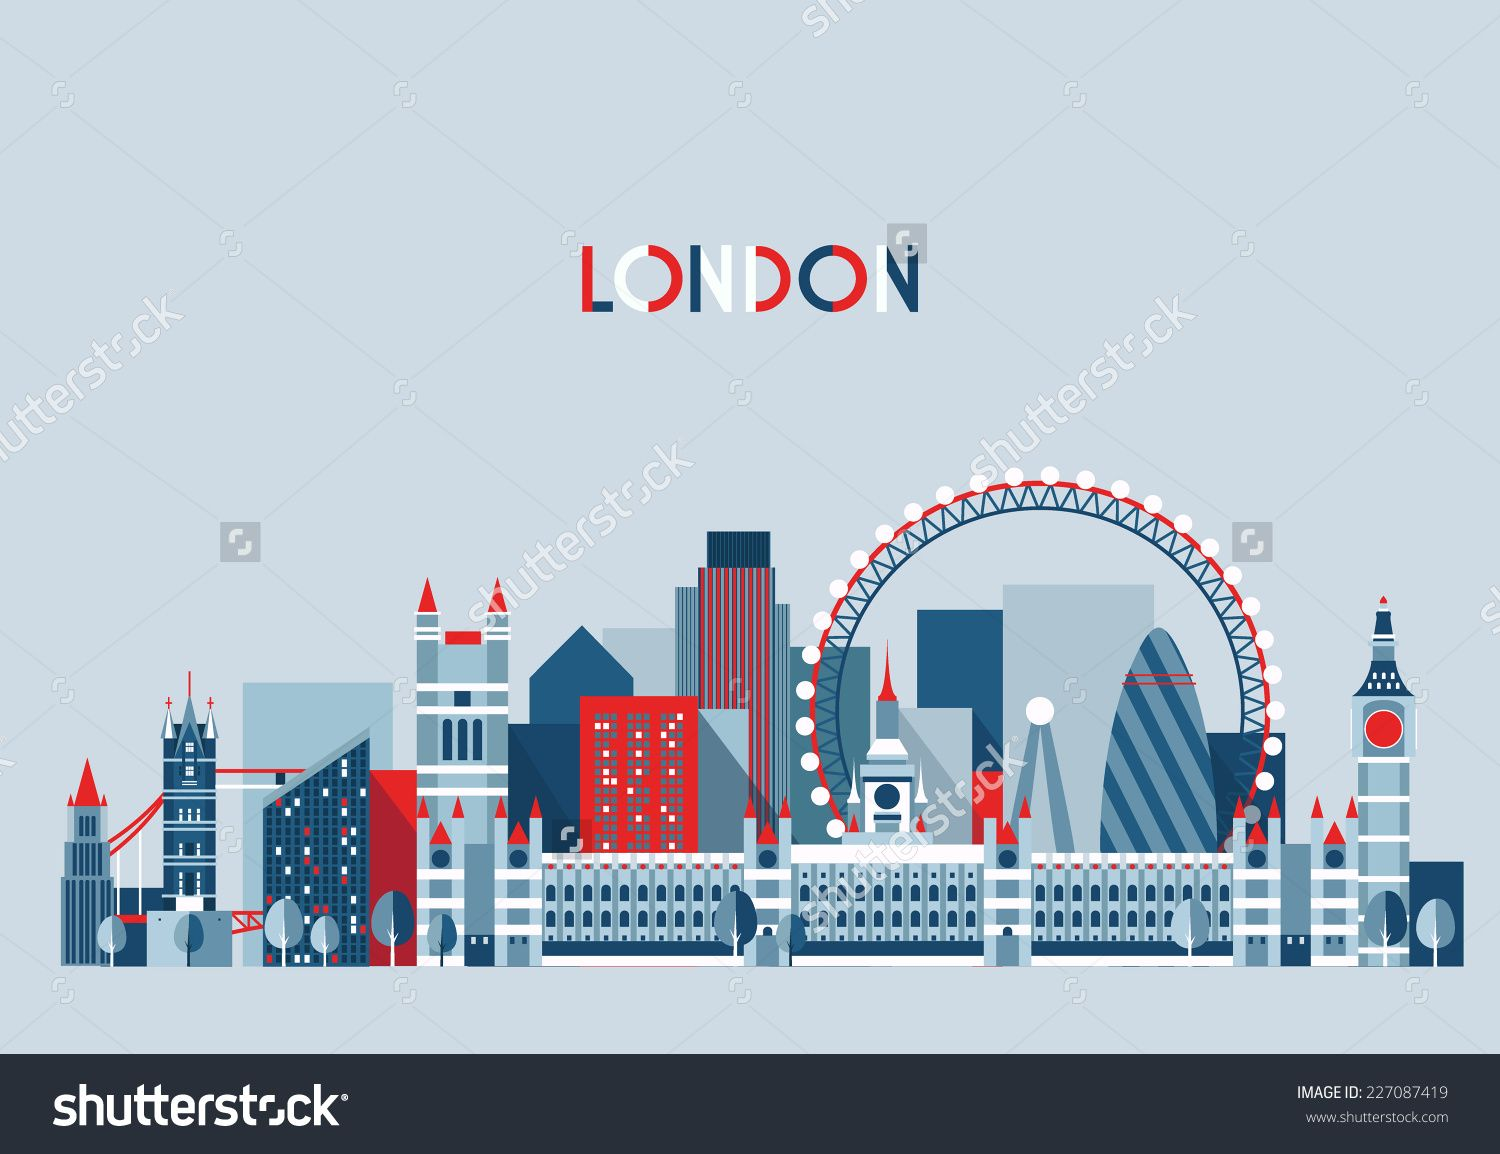 London england city skyline vector background flat trendy london england city skyline vector background flat trendy illustration altavistaventures